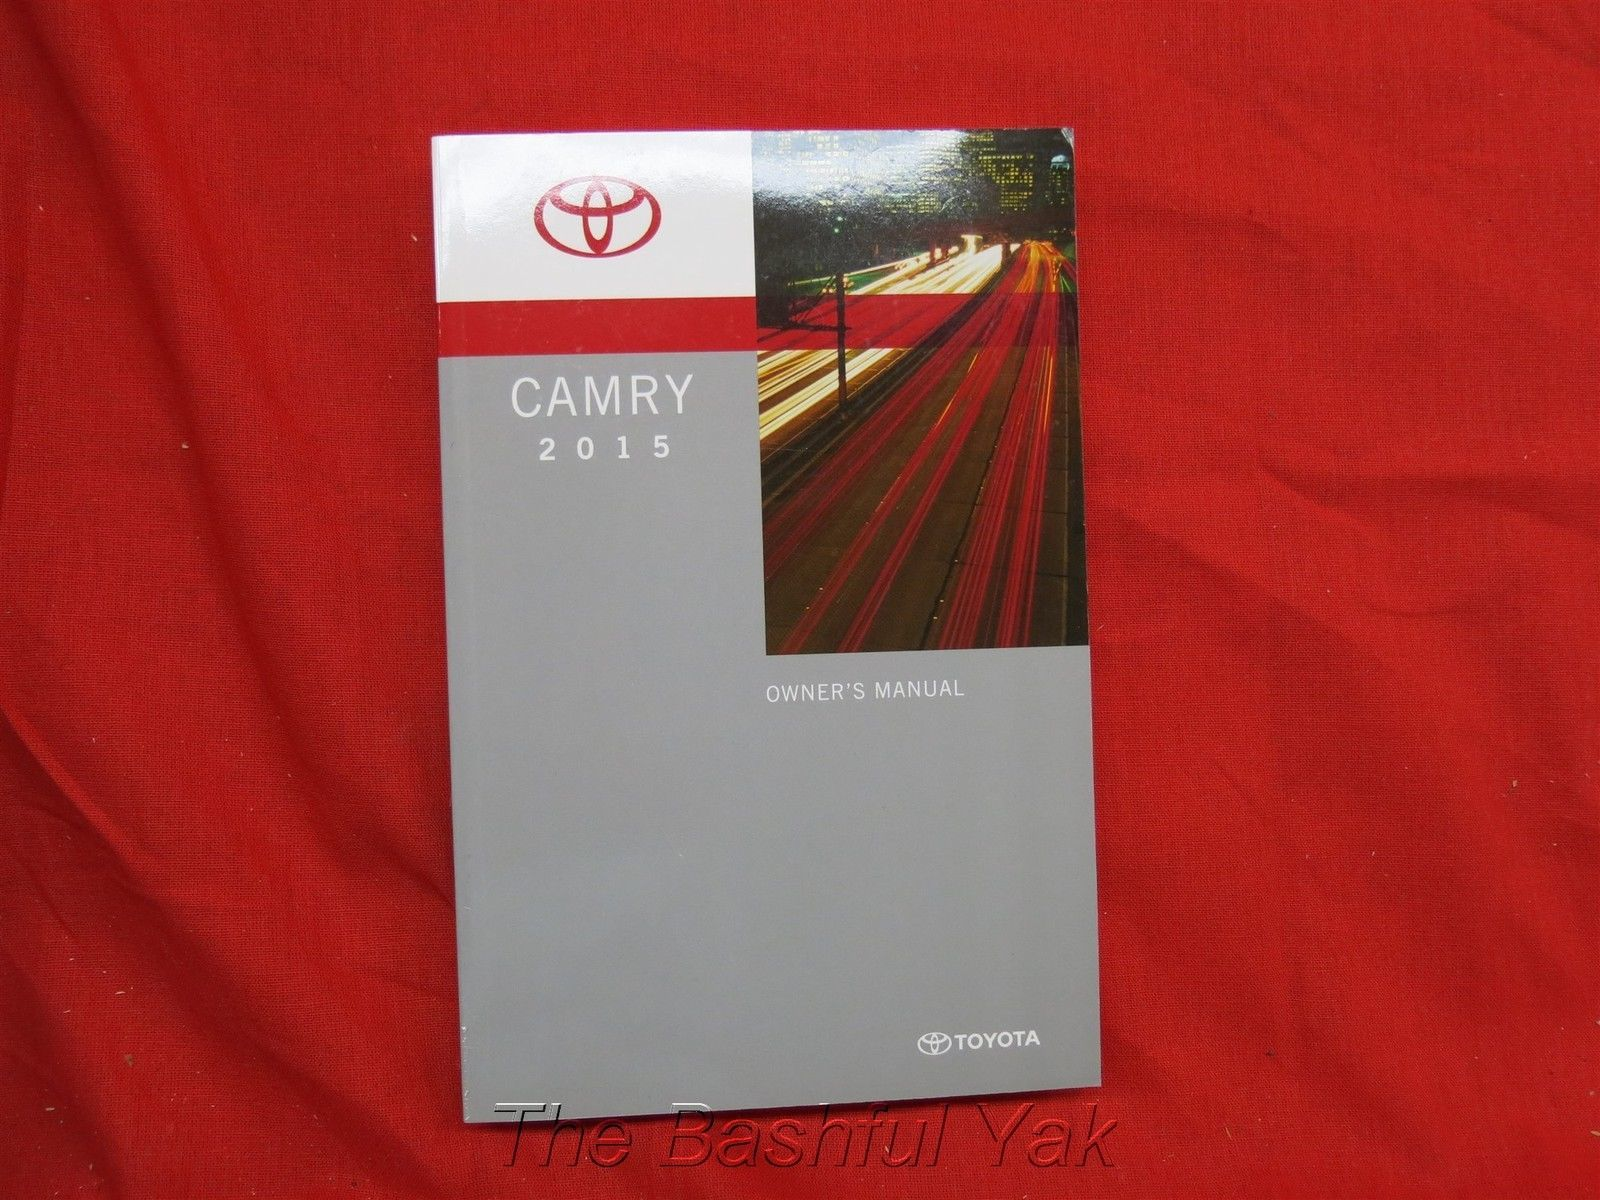 2015 Toyota Camry Owners Manual 03630 3 Book Set Rh Edrew Spectr Me Toyota  Camry Factory